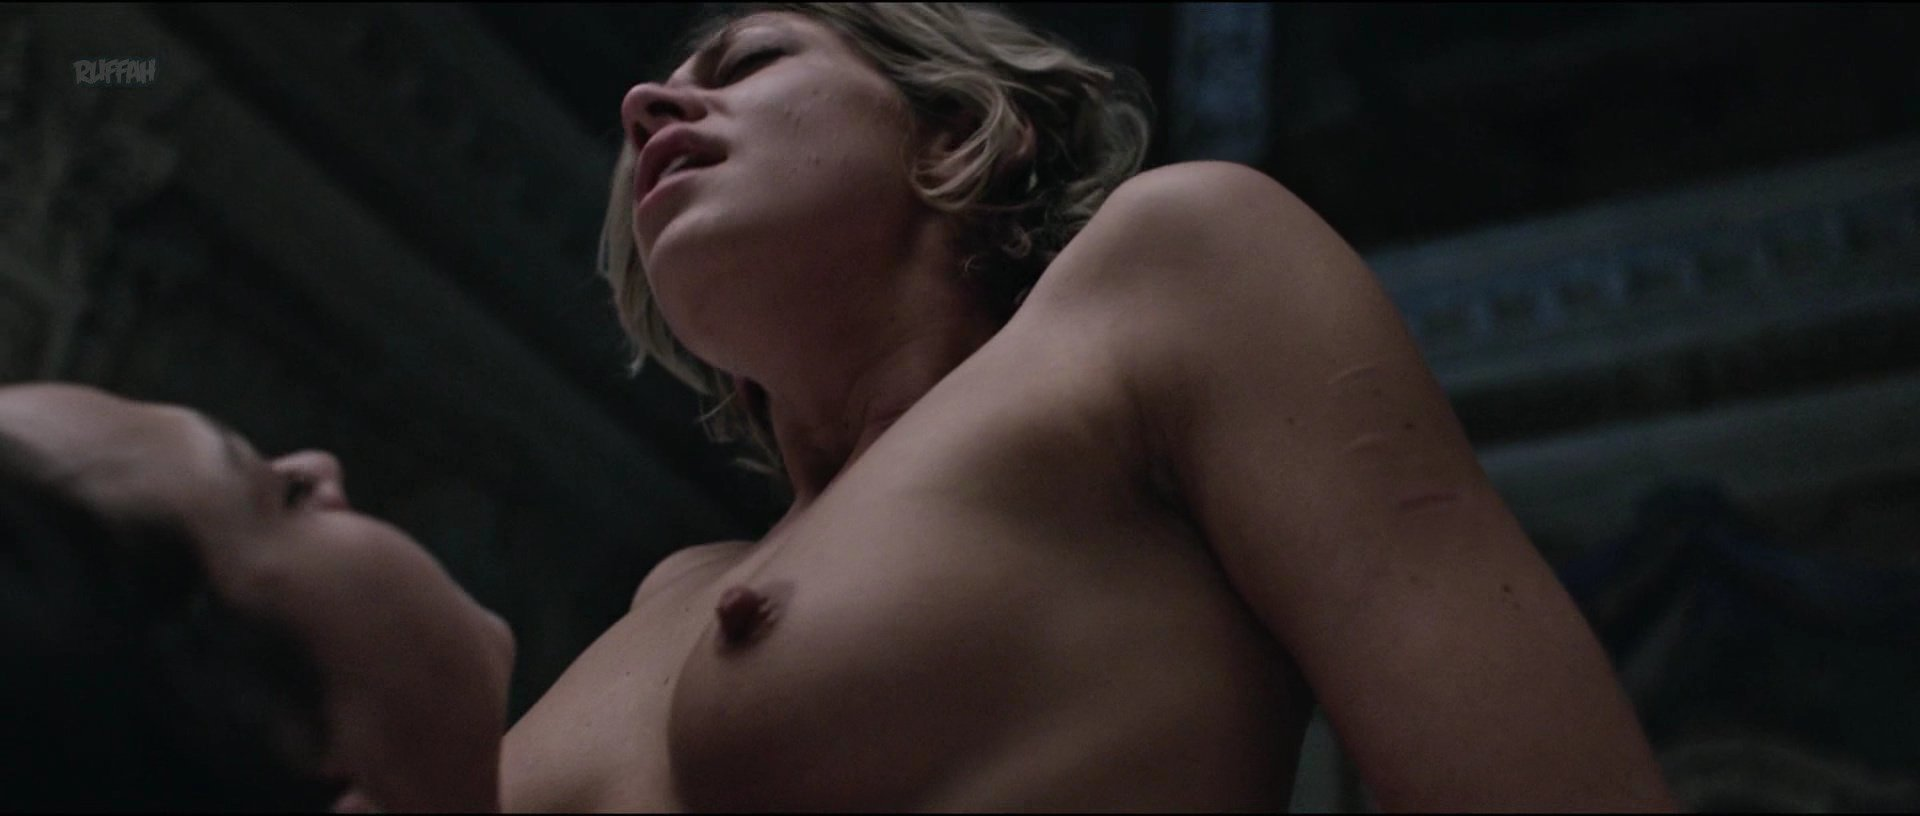 Remarkable, the Movie actresses nude